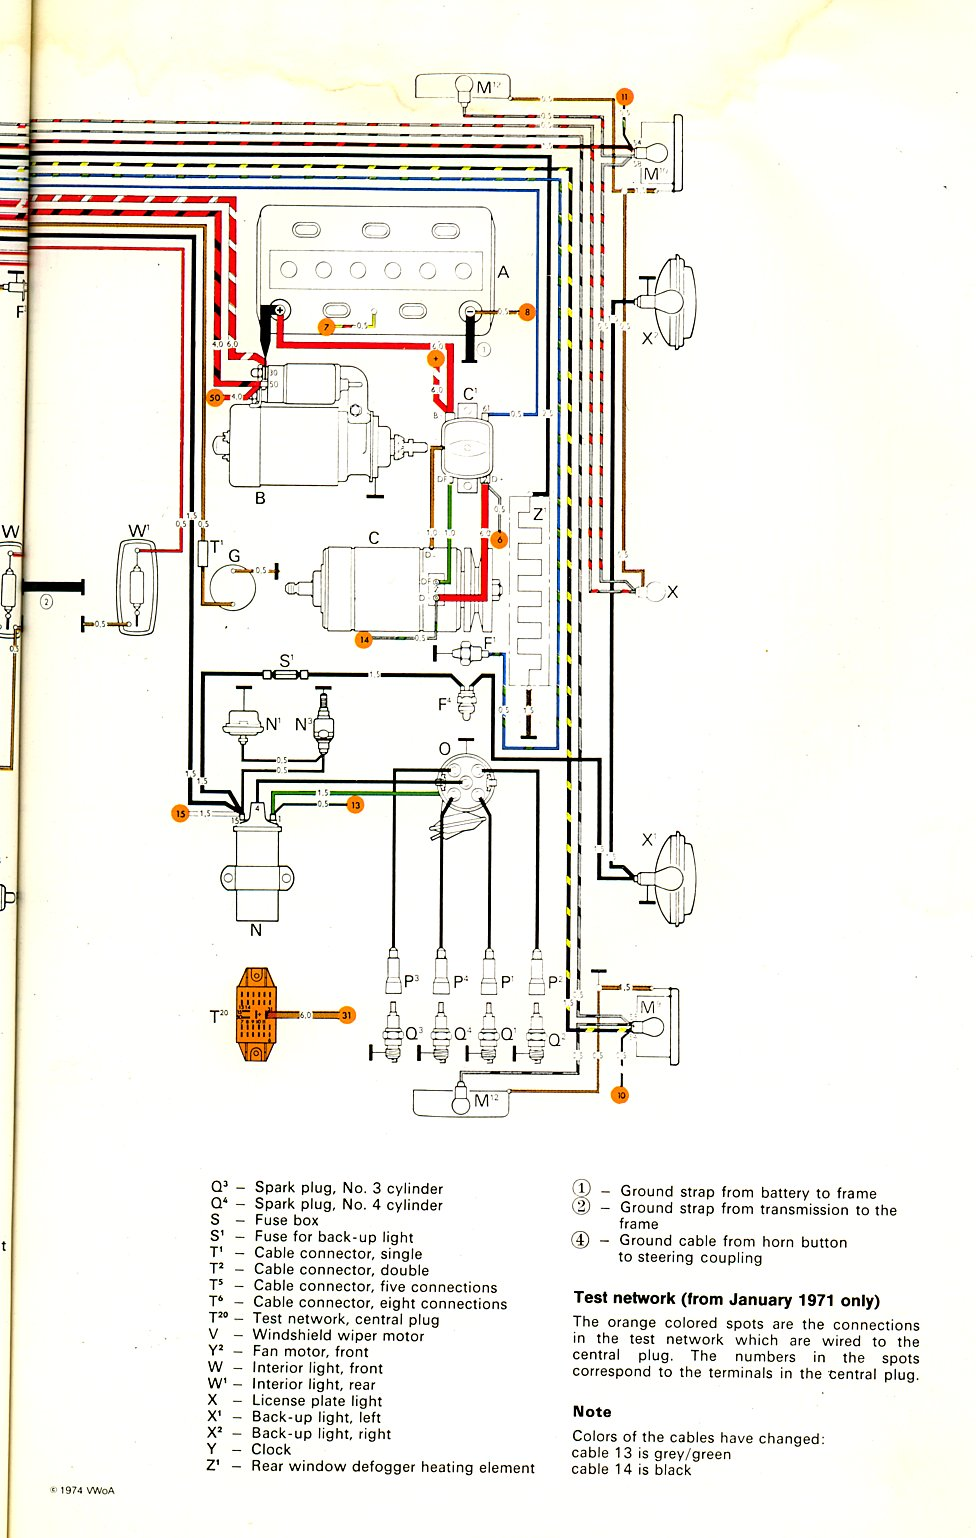 baybus_71b thesamba com type 2 wiring diagrams 1971 vw bus wiring diagram at bakdesigns.co